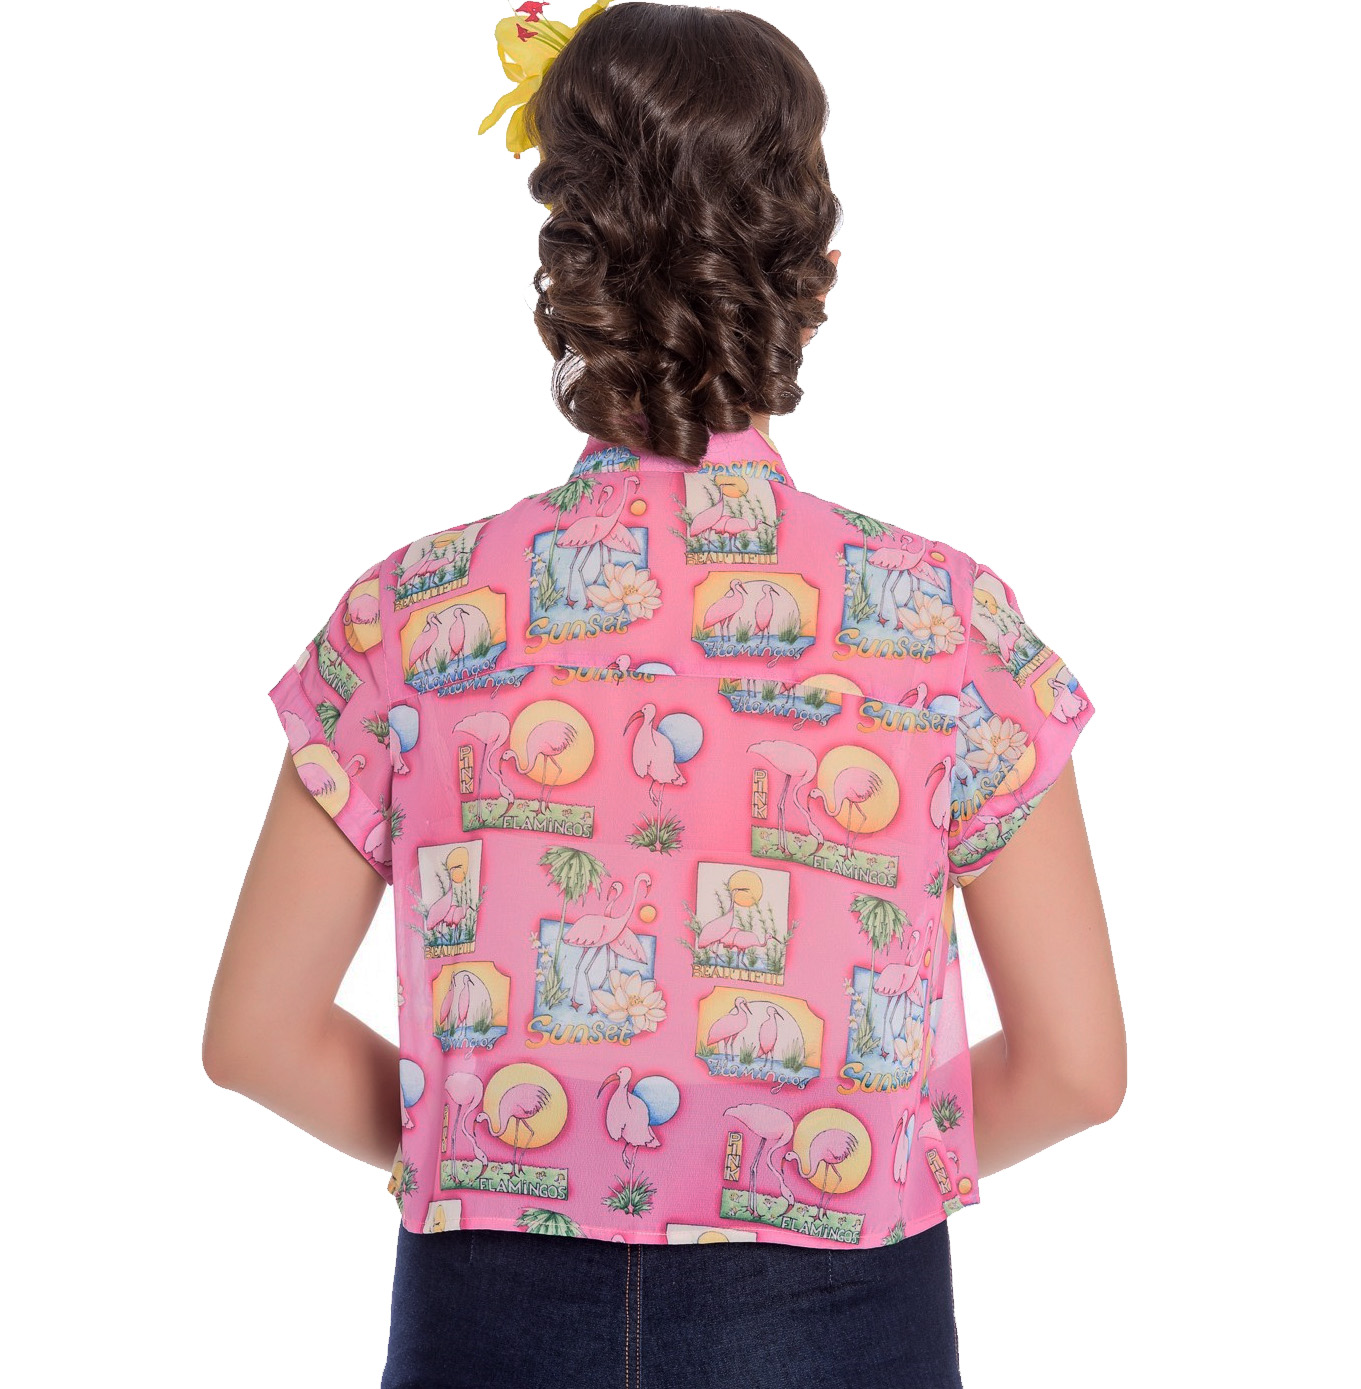 thumbnail 20 - Hell Bunny 50s Retro Top Pink Flamingo MAXINE Cropped Blouse Shirt All Sizes